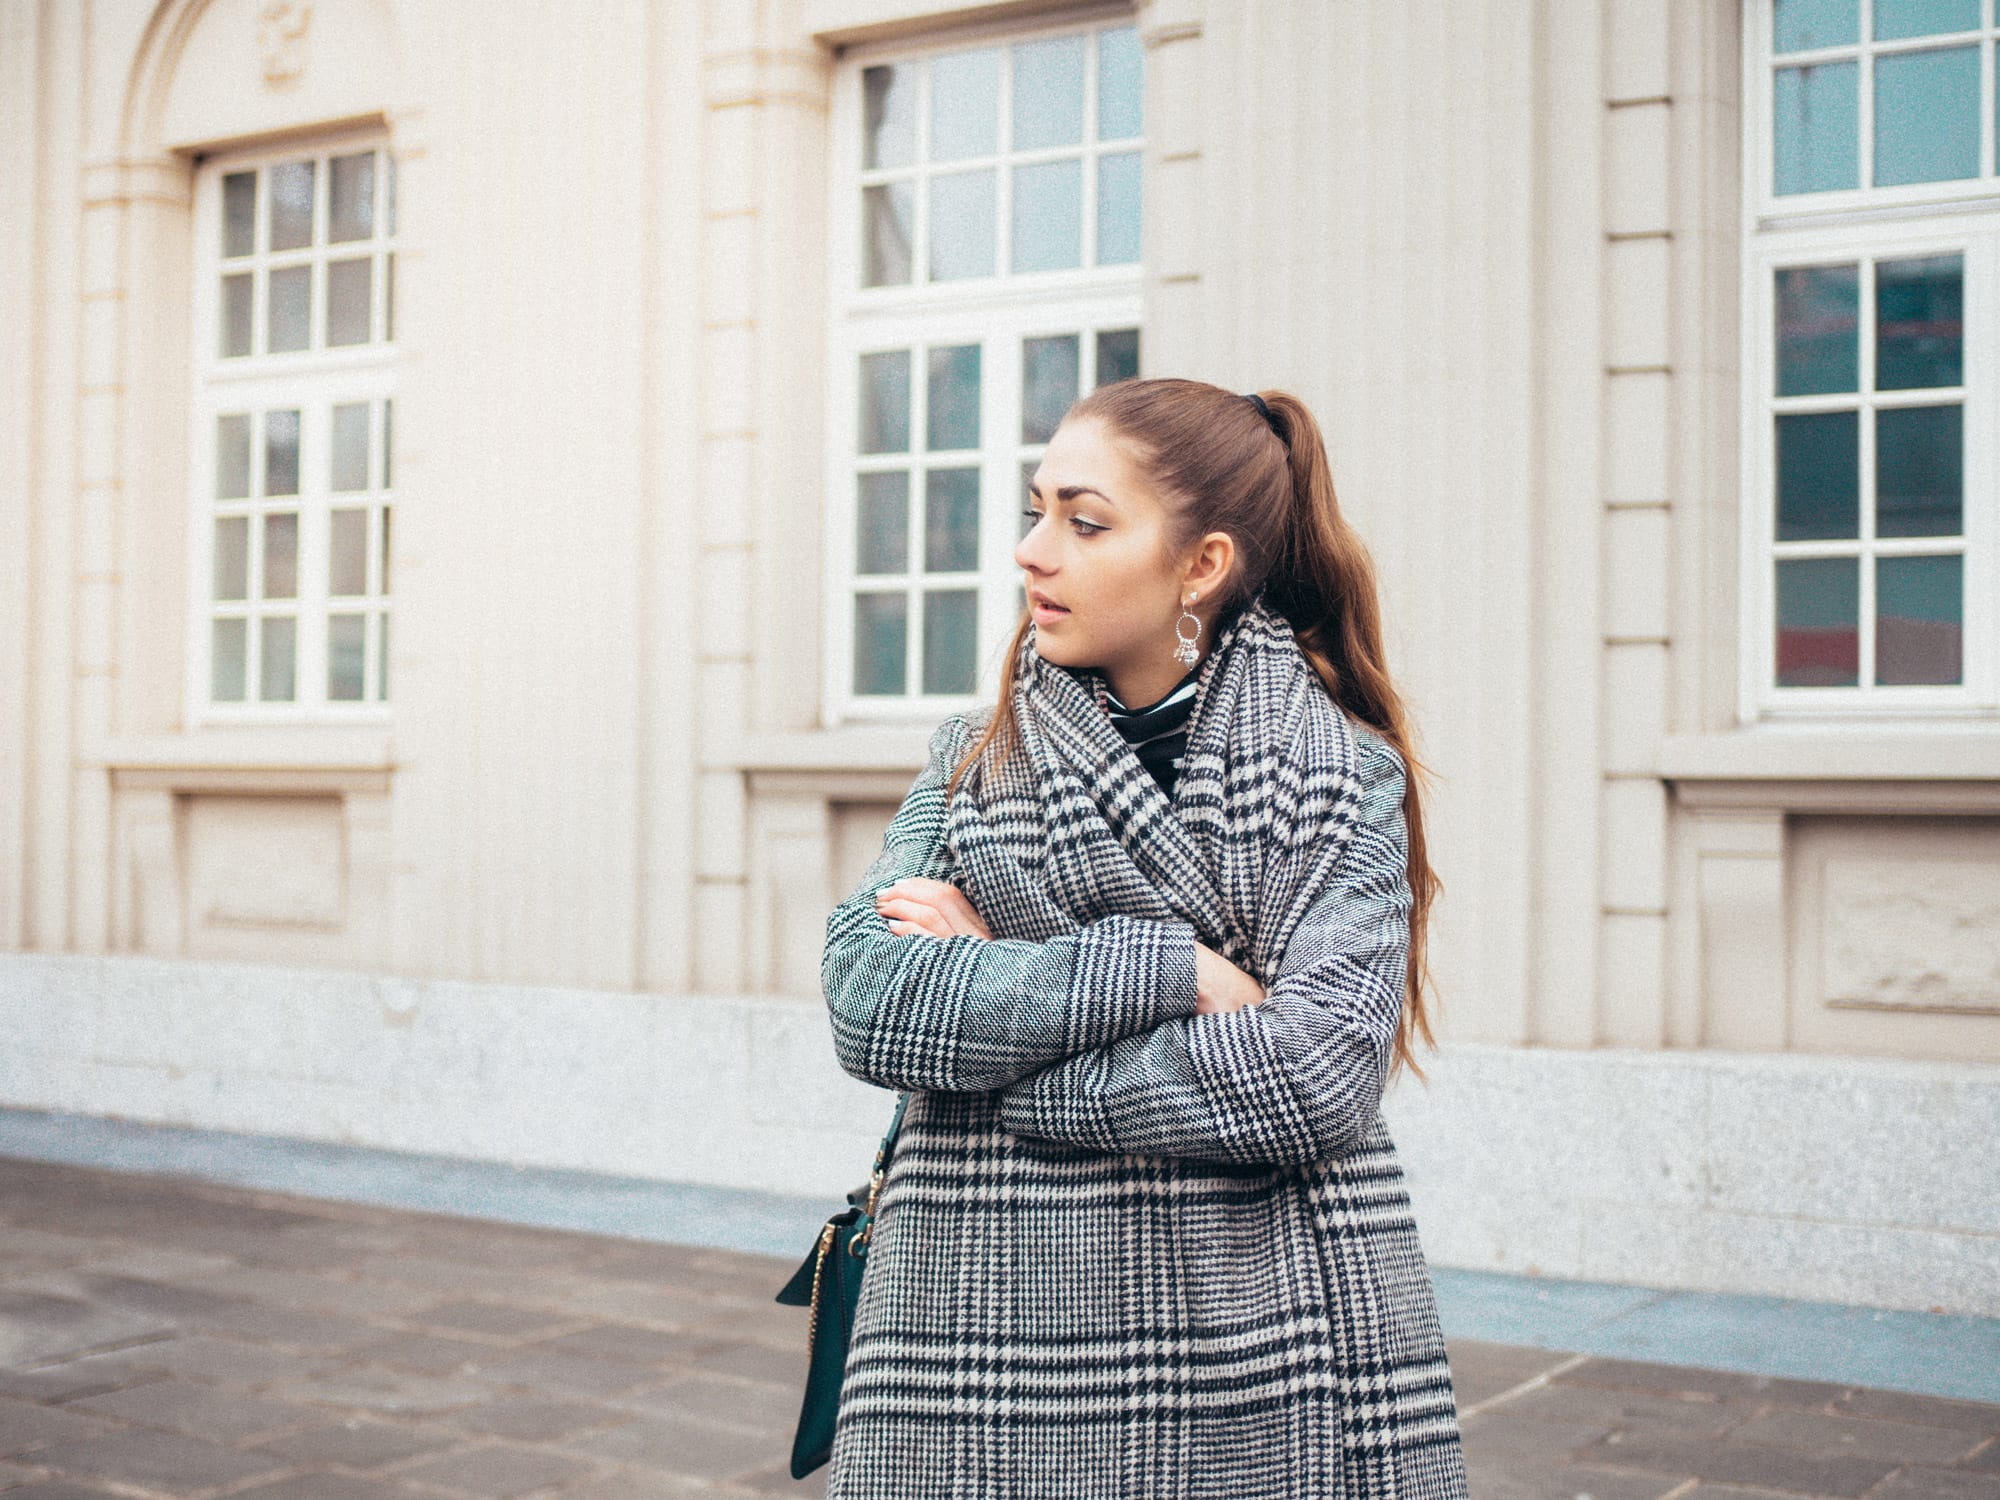 Checked-Coat/Chloé-Bag/Oversized-Coat/Outfit/Fashion/Outfitpost/Outfit-Photo/Details